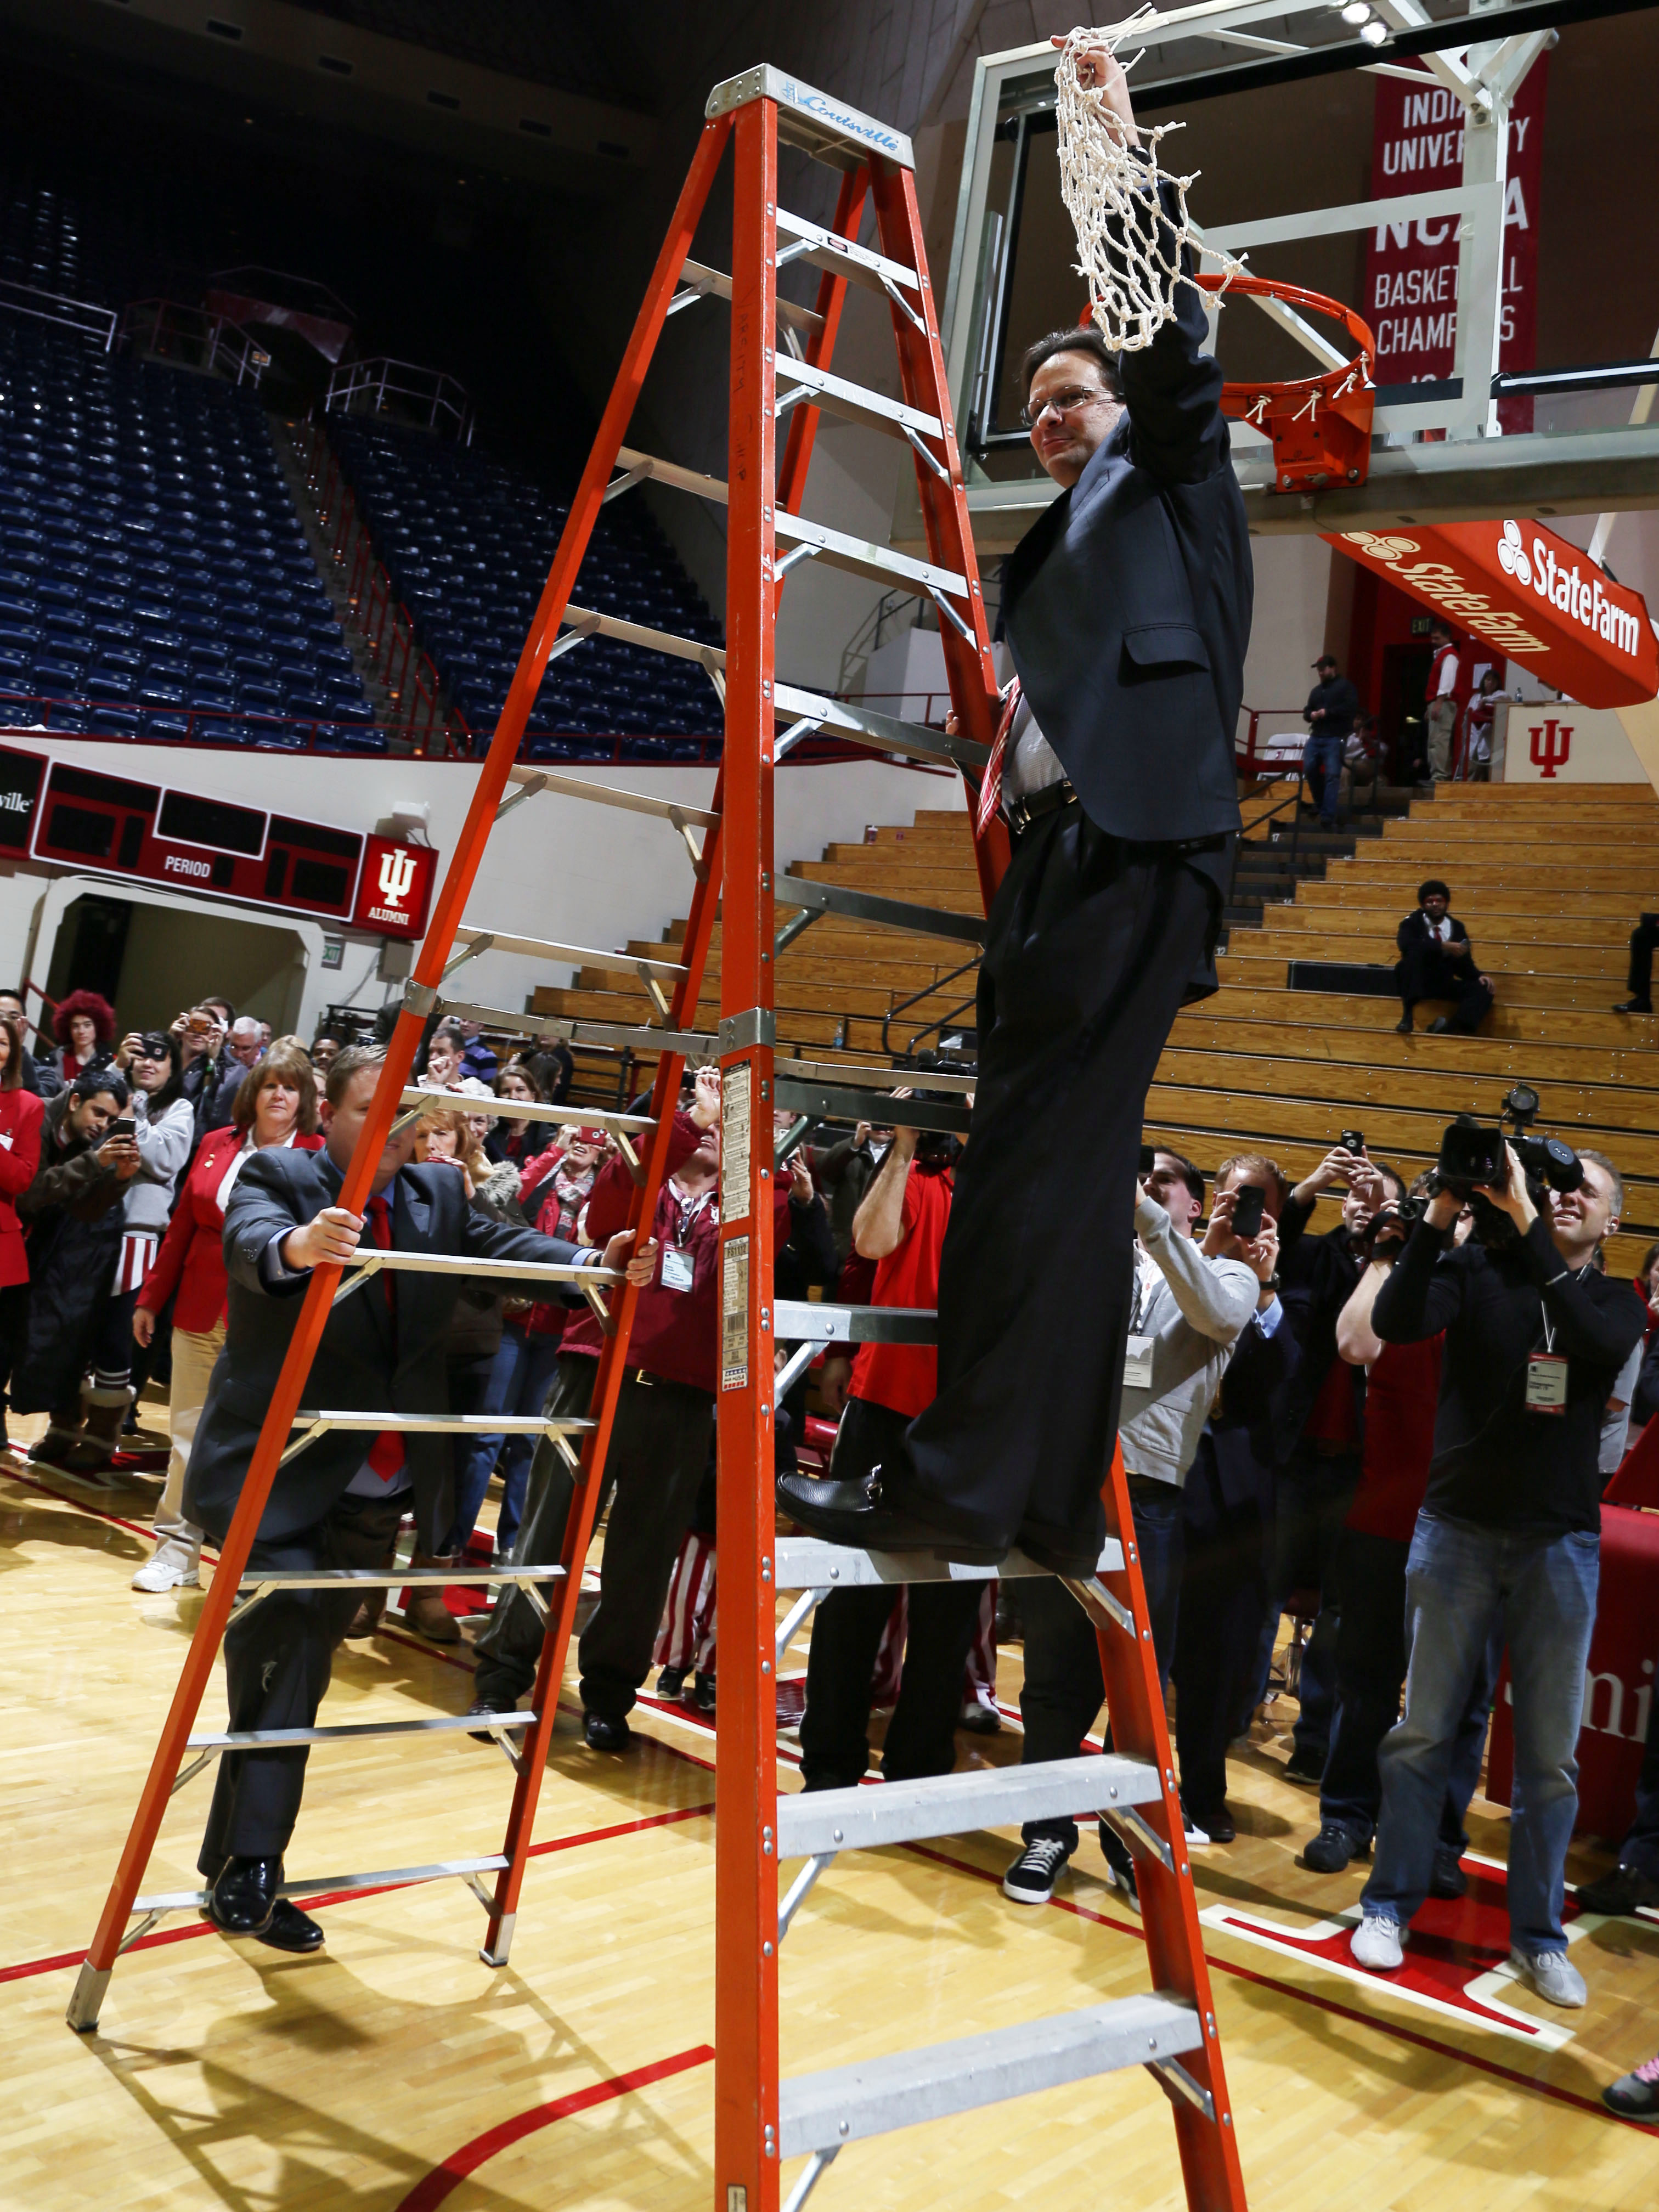 Tom Crean cuts down the net after Indiana clinched a share of the Big Ten title. (Credit: USA Today Sports)